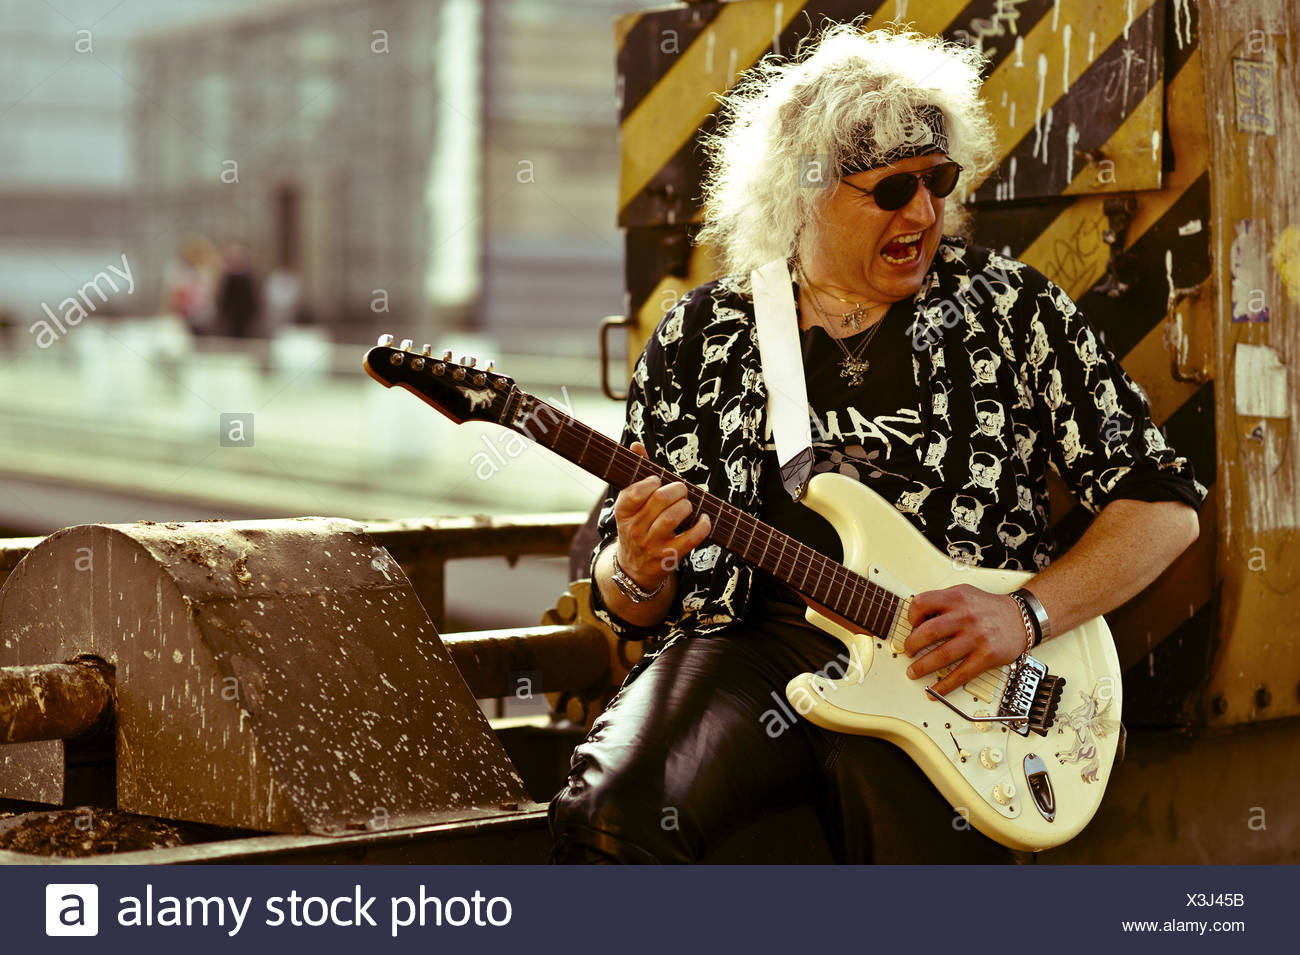 Rock music and old industrial sites - Stock Image